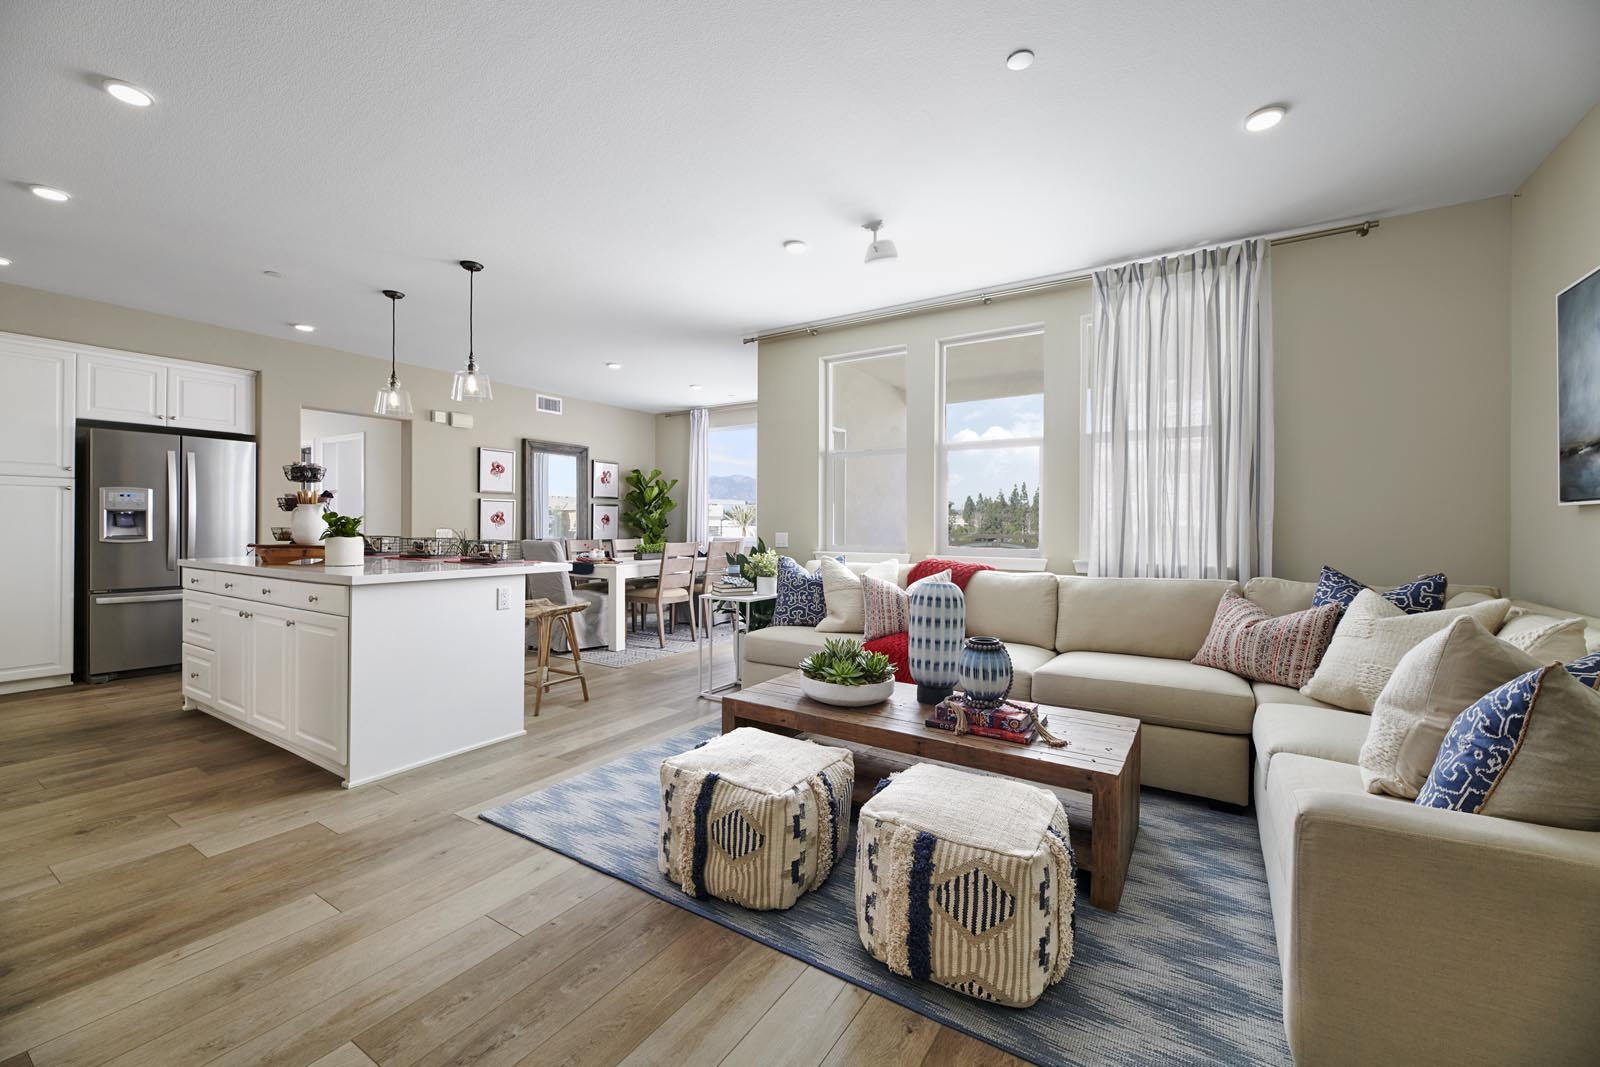 Great Room to Kitchen | Residence 4 | Aspire | New Homes in Rancho Cucamonga, CA | Van Daele Homes